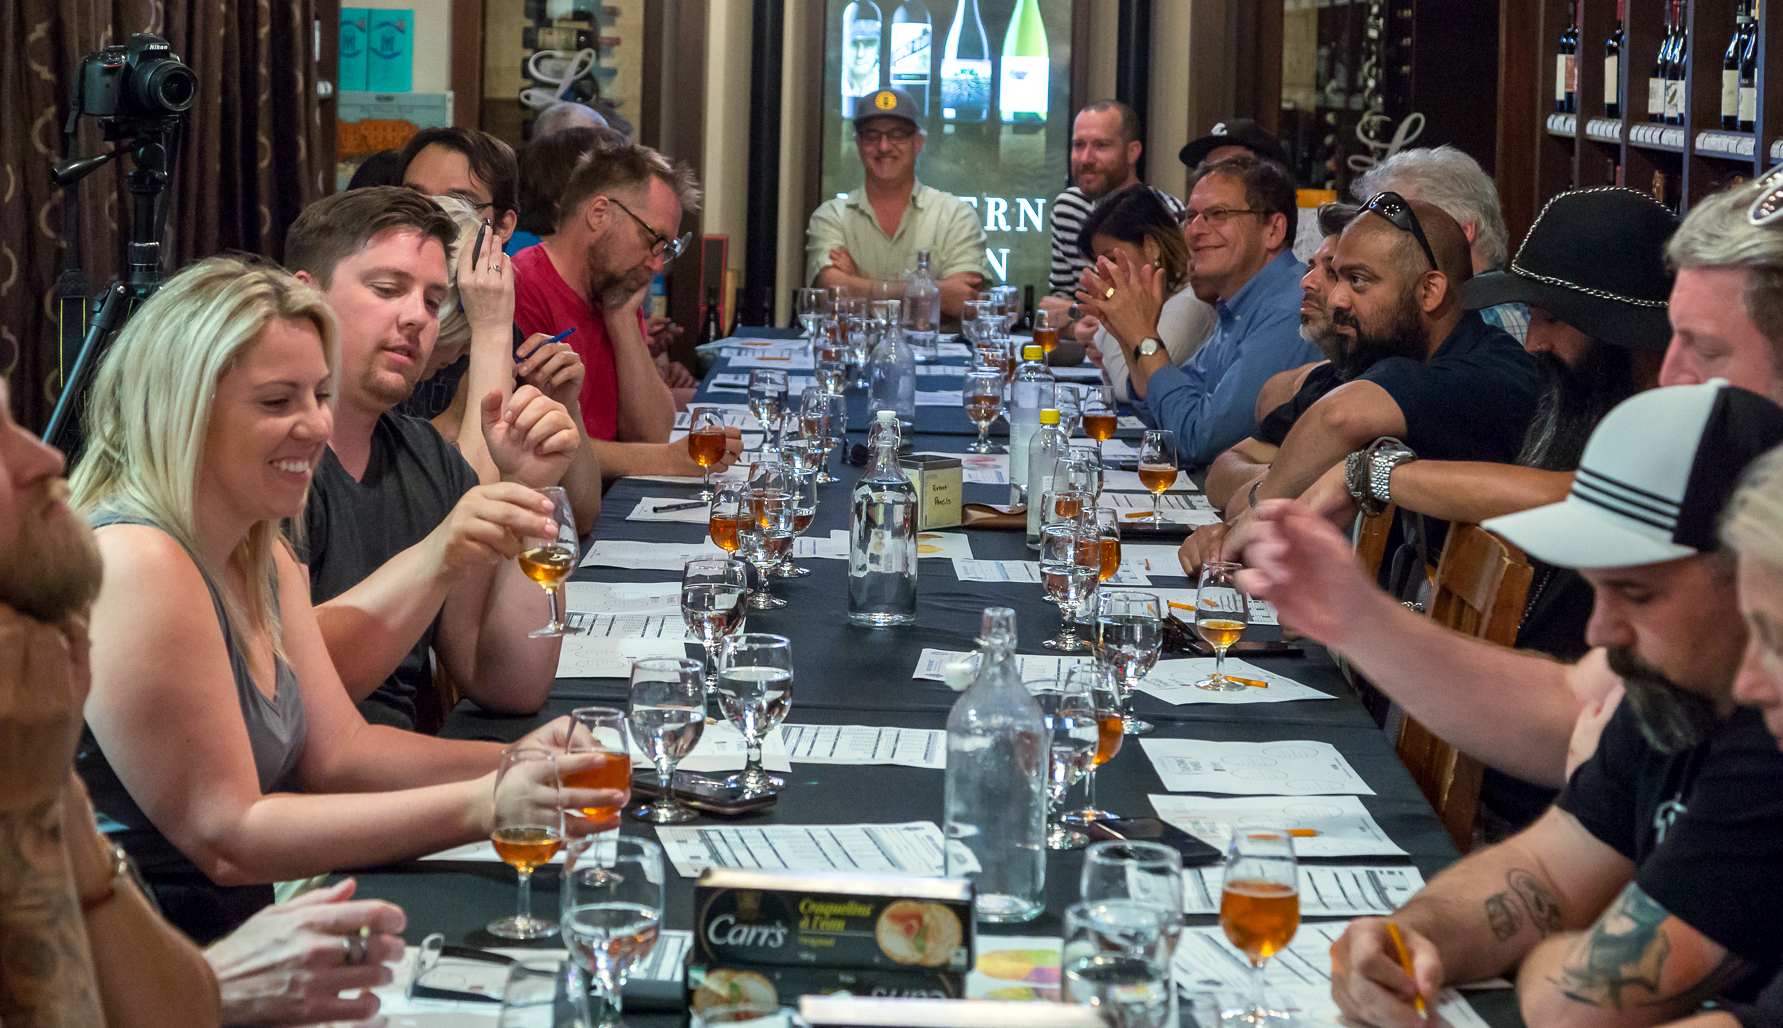 Evaluating Beer: An Evening With The What's Brewing Tasting Panel